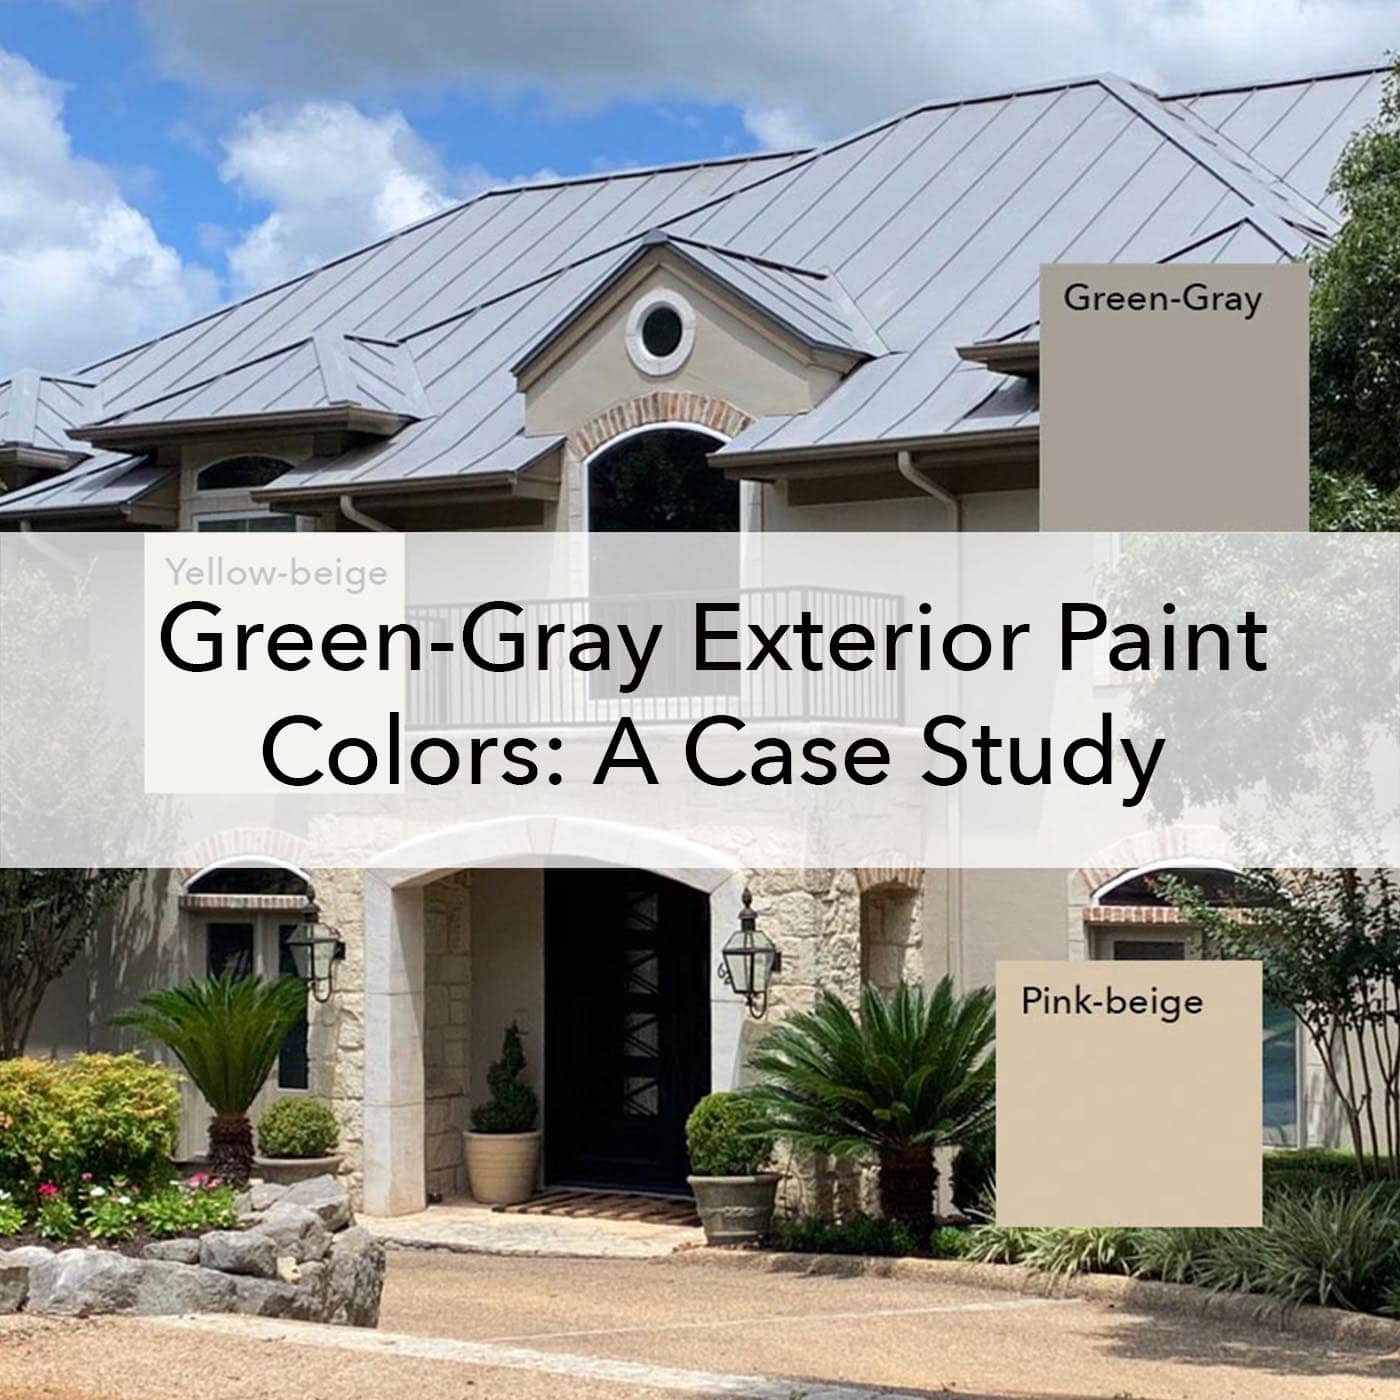 Green gray exterior paint colors, case study blog